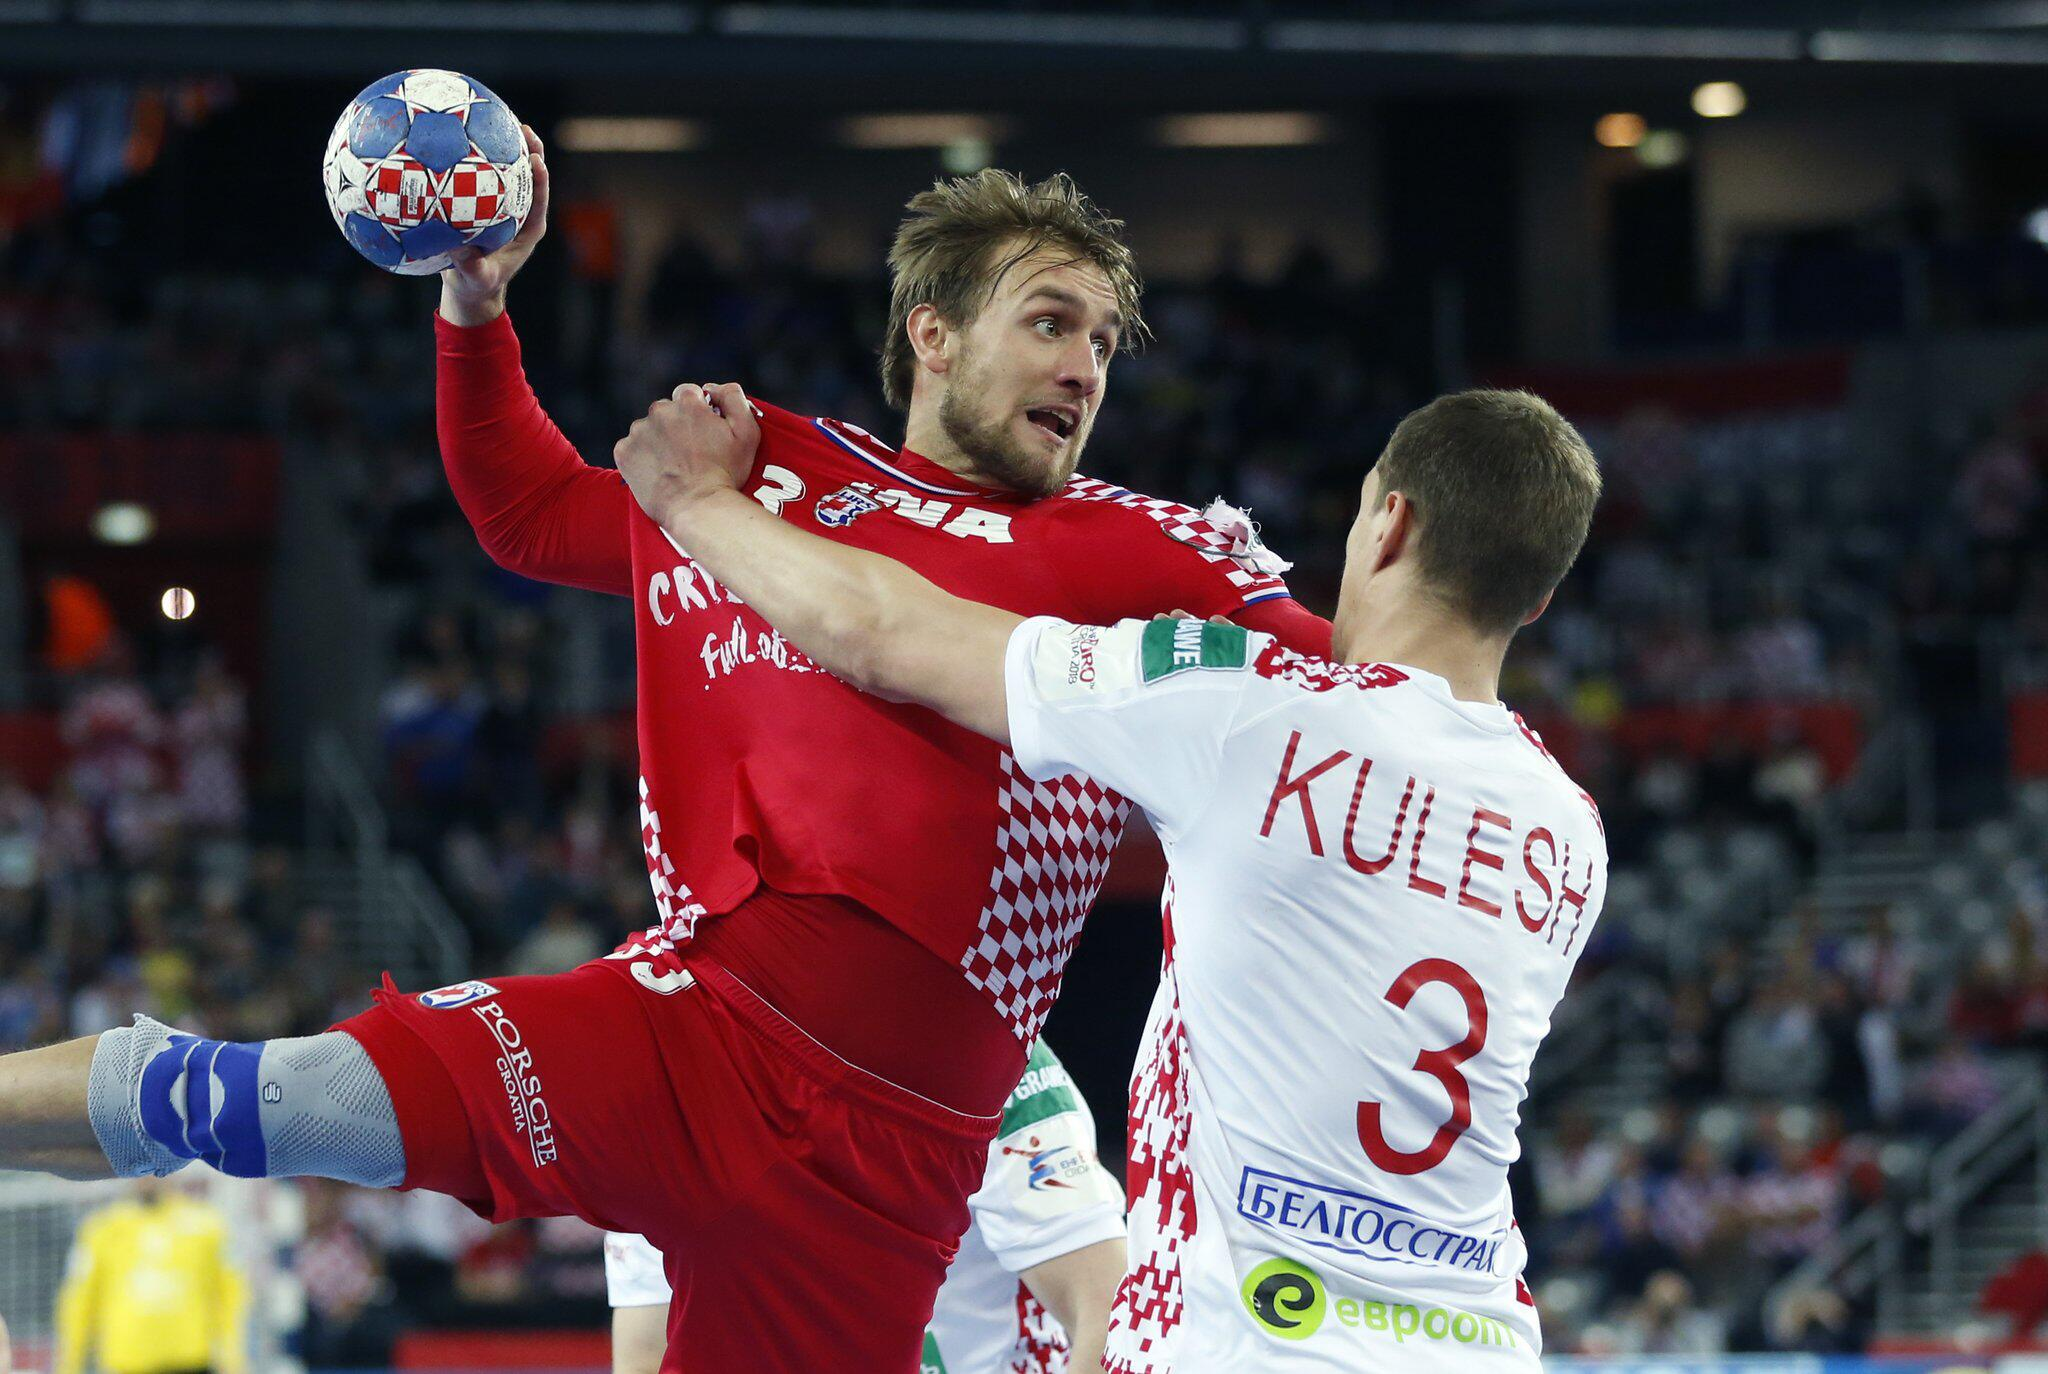 handball norwegen kroatien